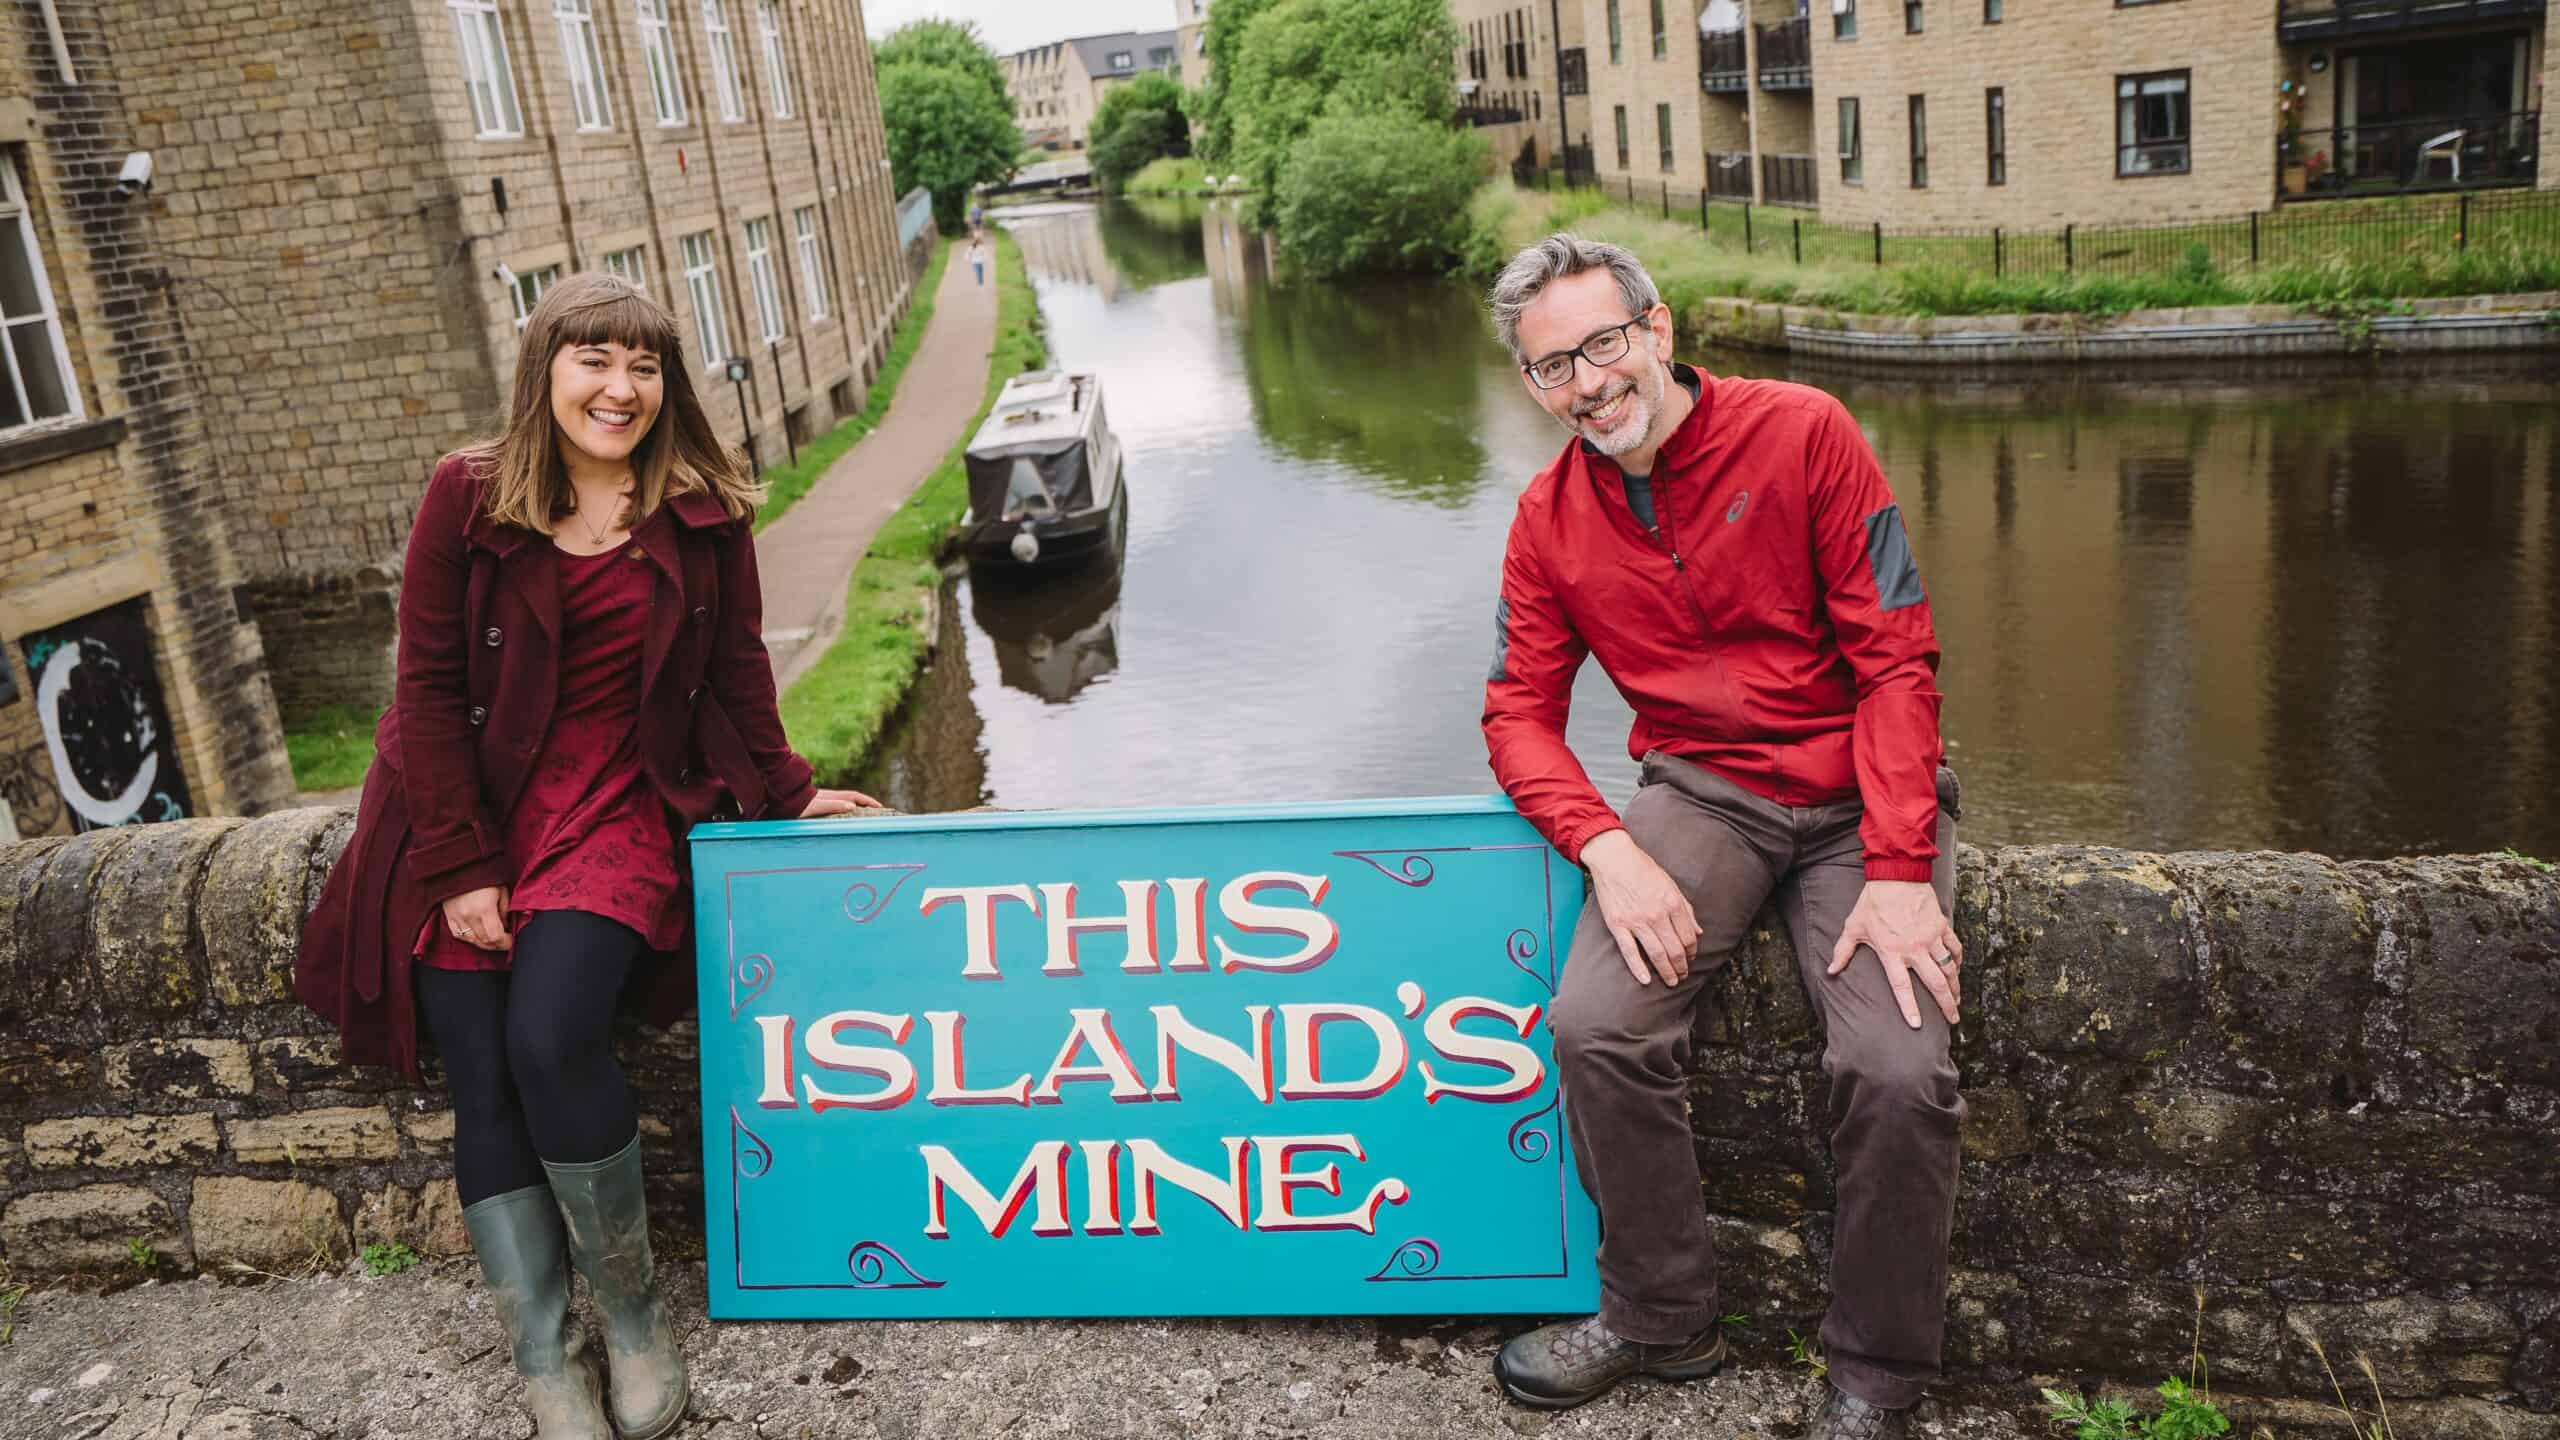 Actors with a canal boat in the background